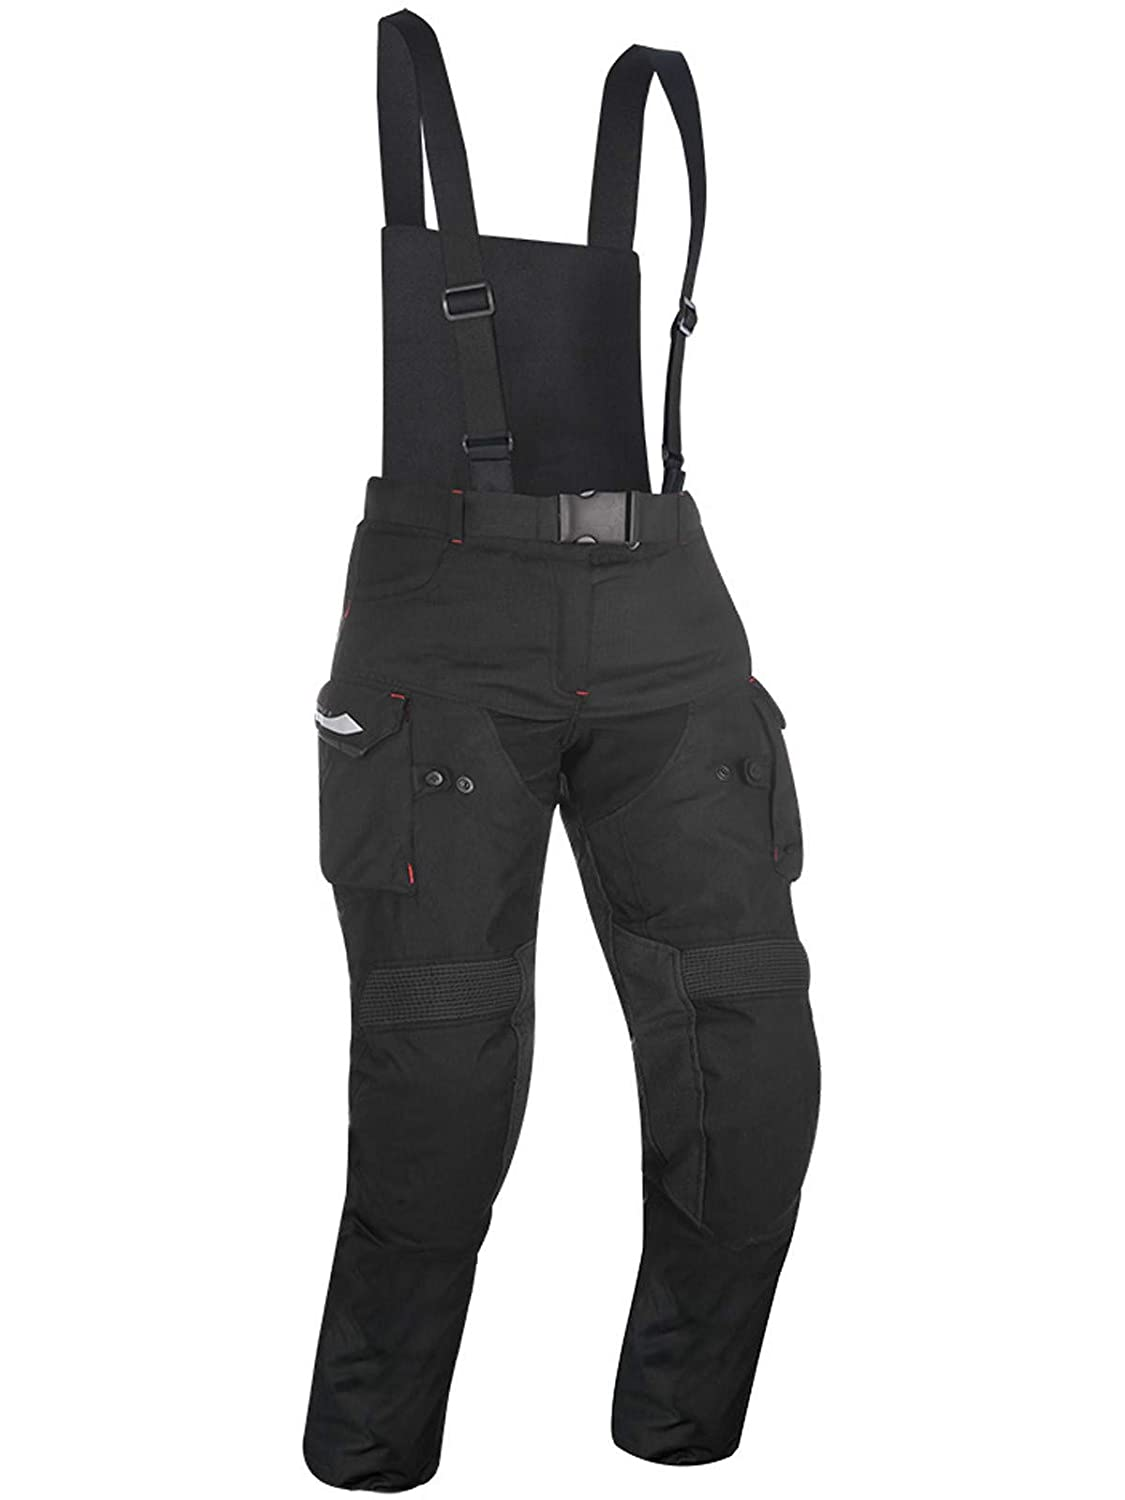 Oxford TM186201SS Montreal 3.0 Motorcycle Trousers S Black Short